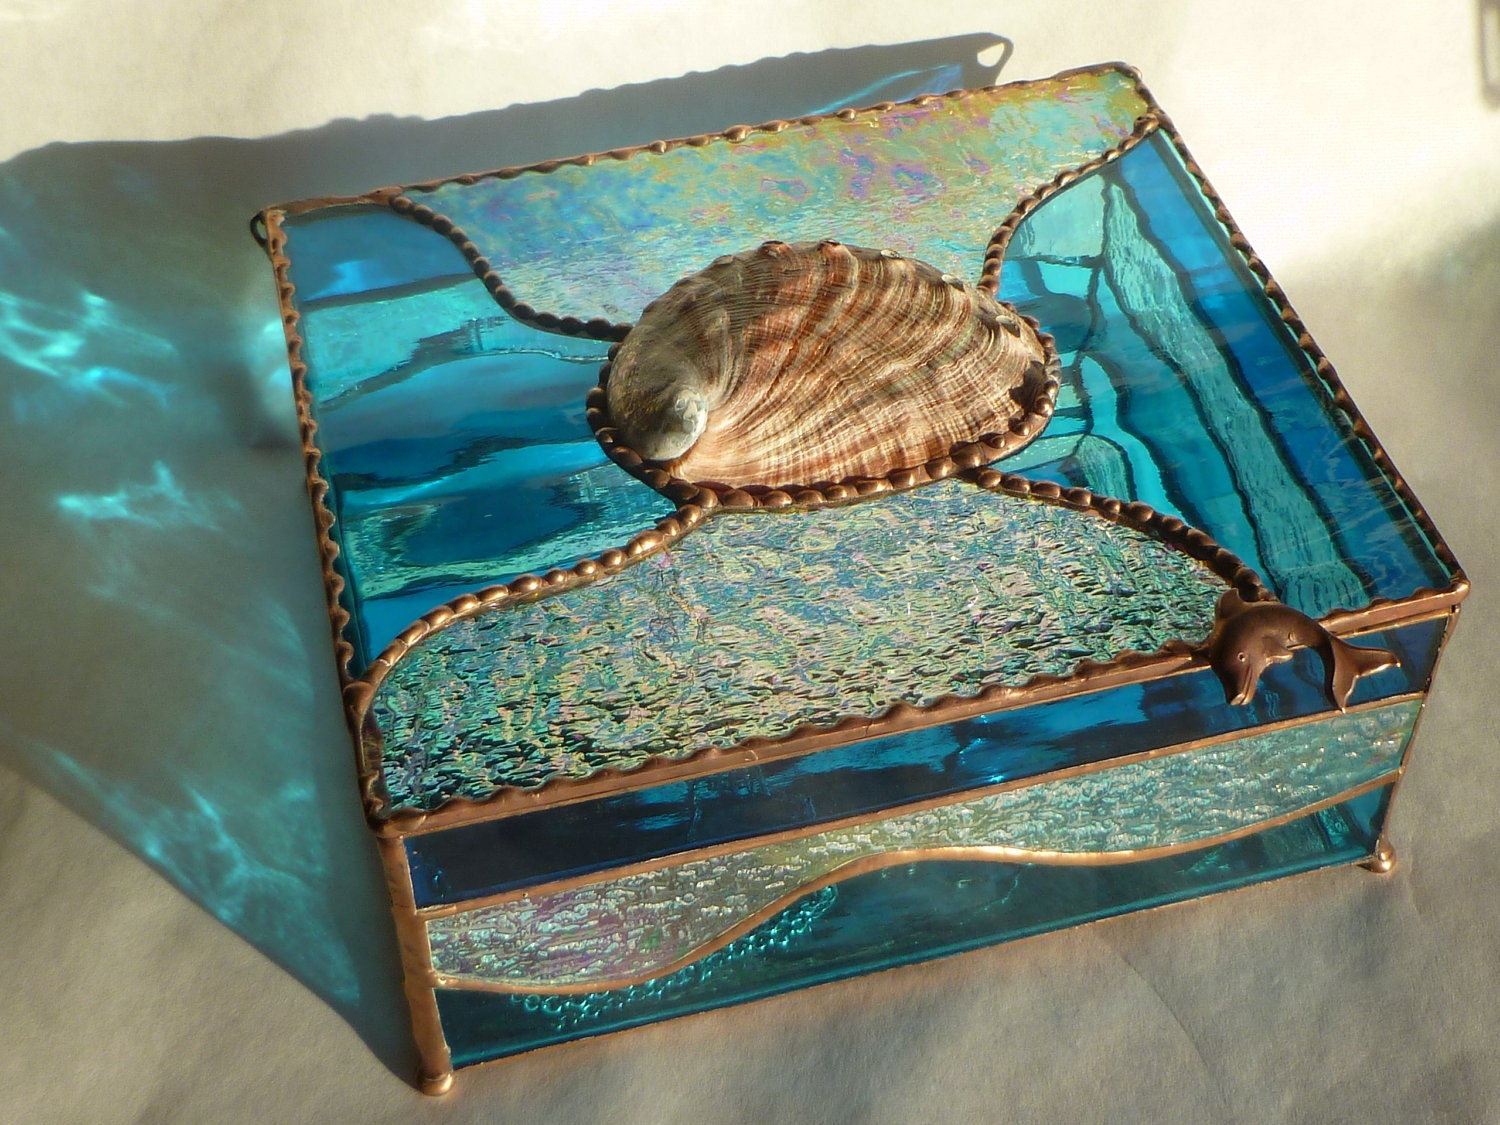 Stained Glass Jewelry Box Patterns Stained glass jewelry box by